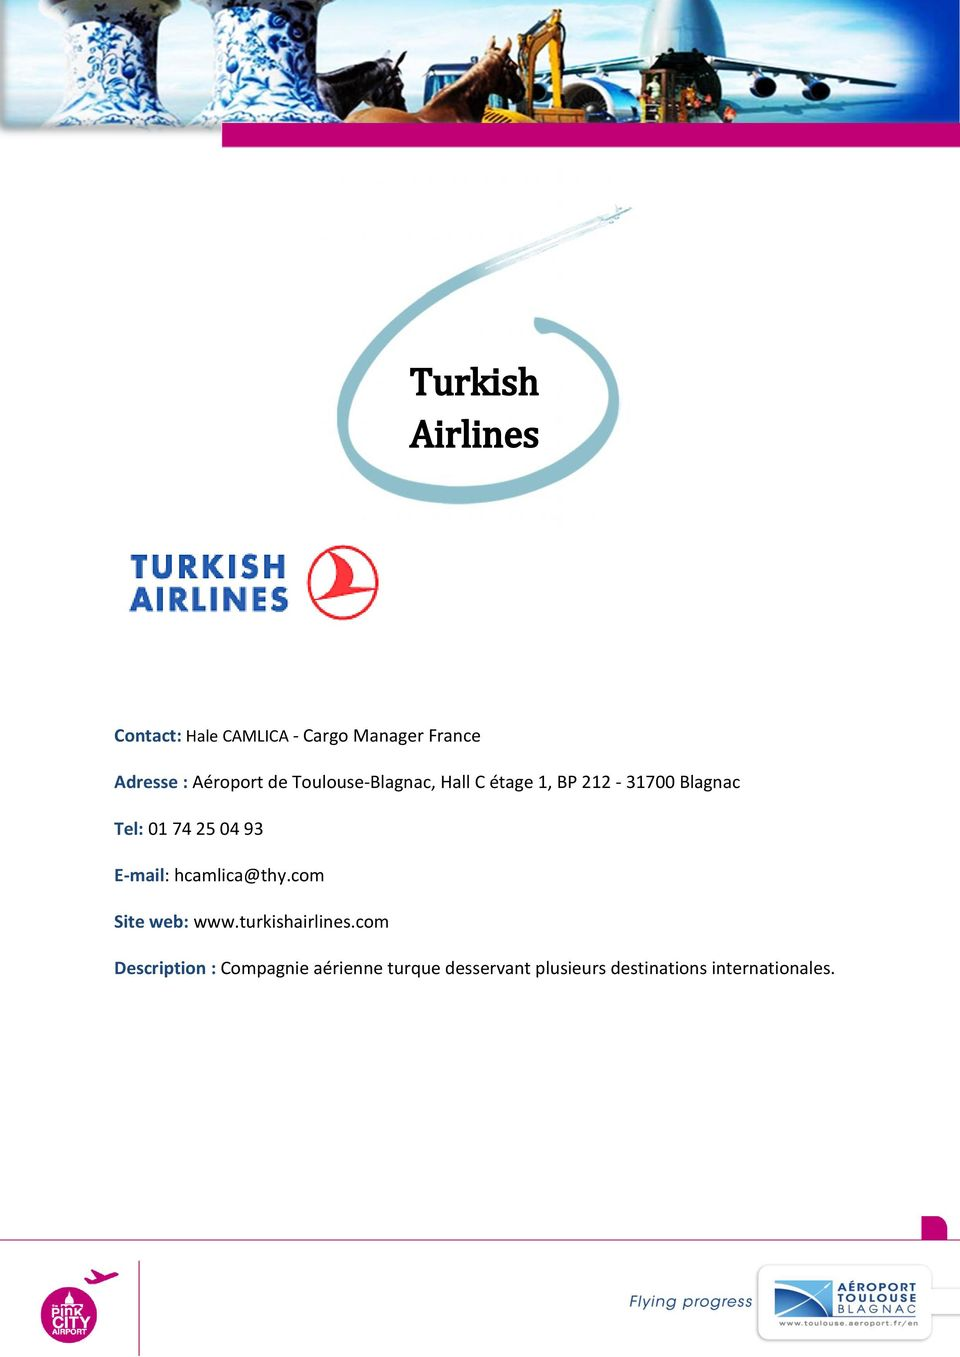 93 E-mail: hcamlica@thy.com Site web: www.turkishairlines.